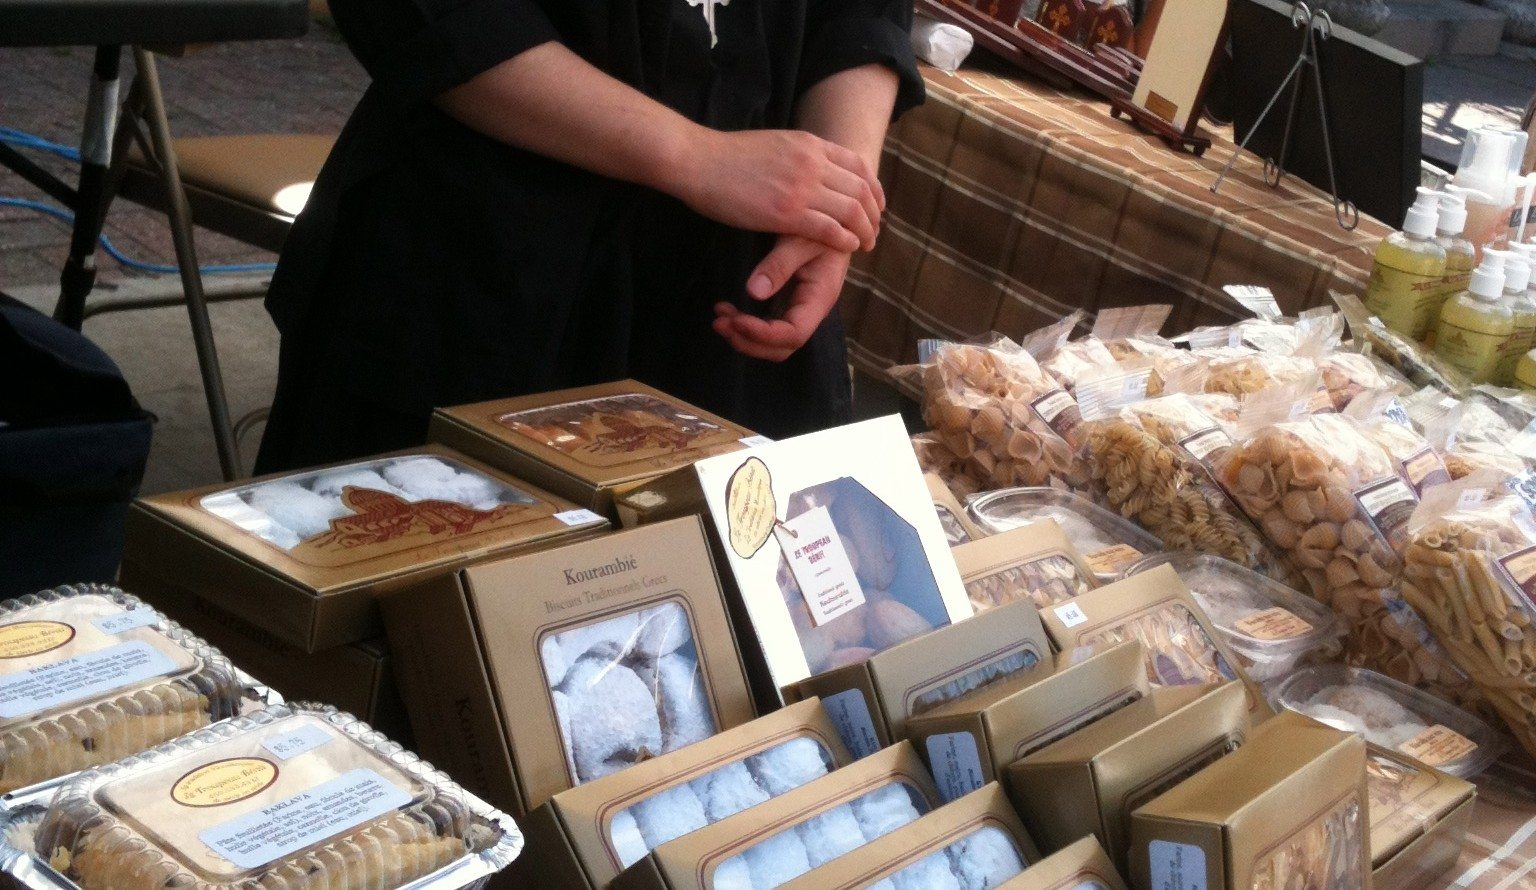 TO MARKET! Feta-making nuns and other marvels of the Marché Vieux Hull (Thursdays 10am – 3pm)